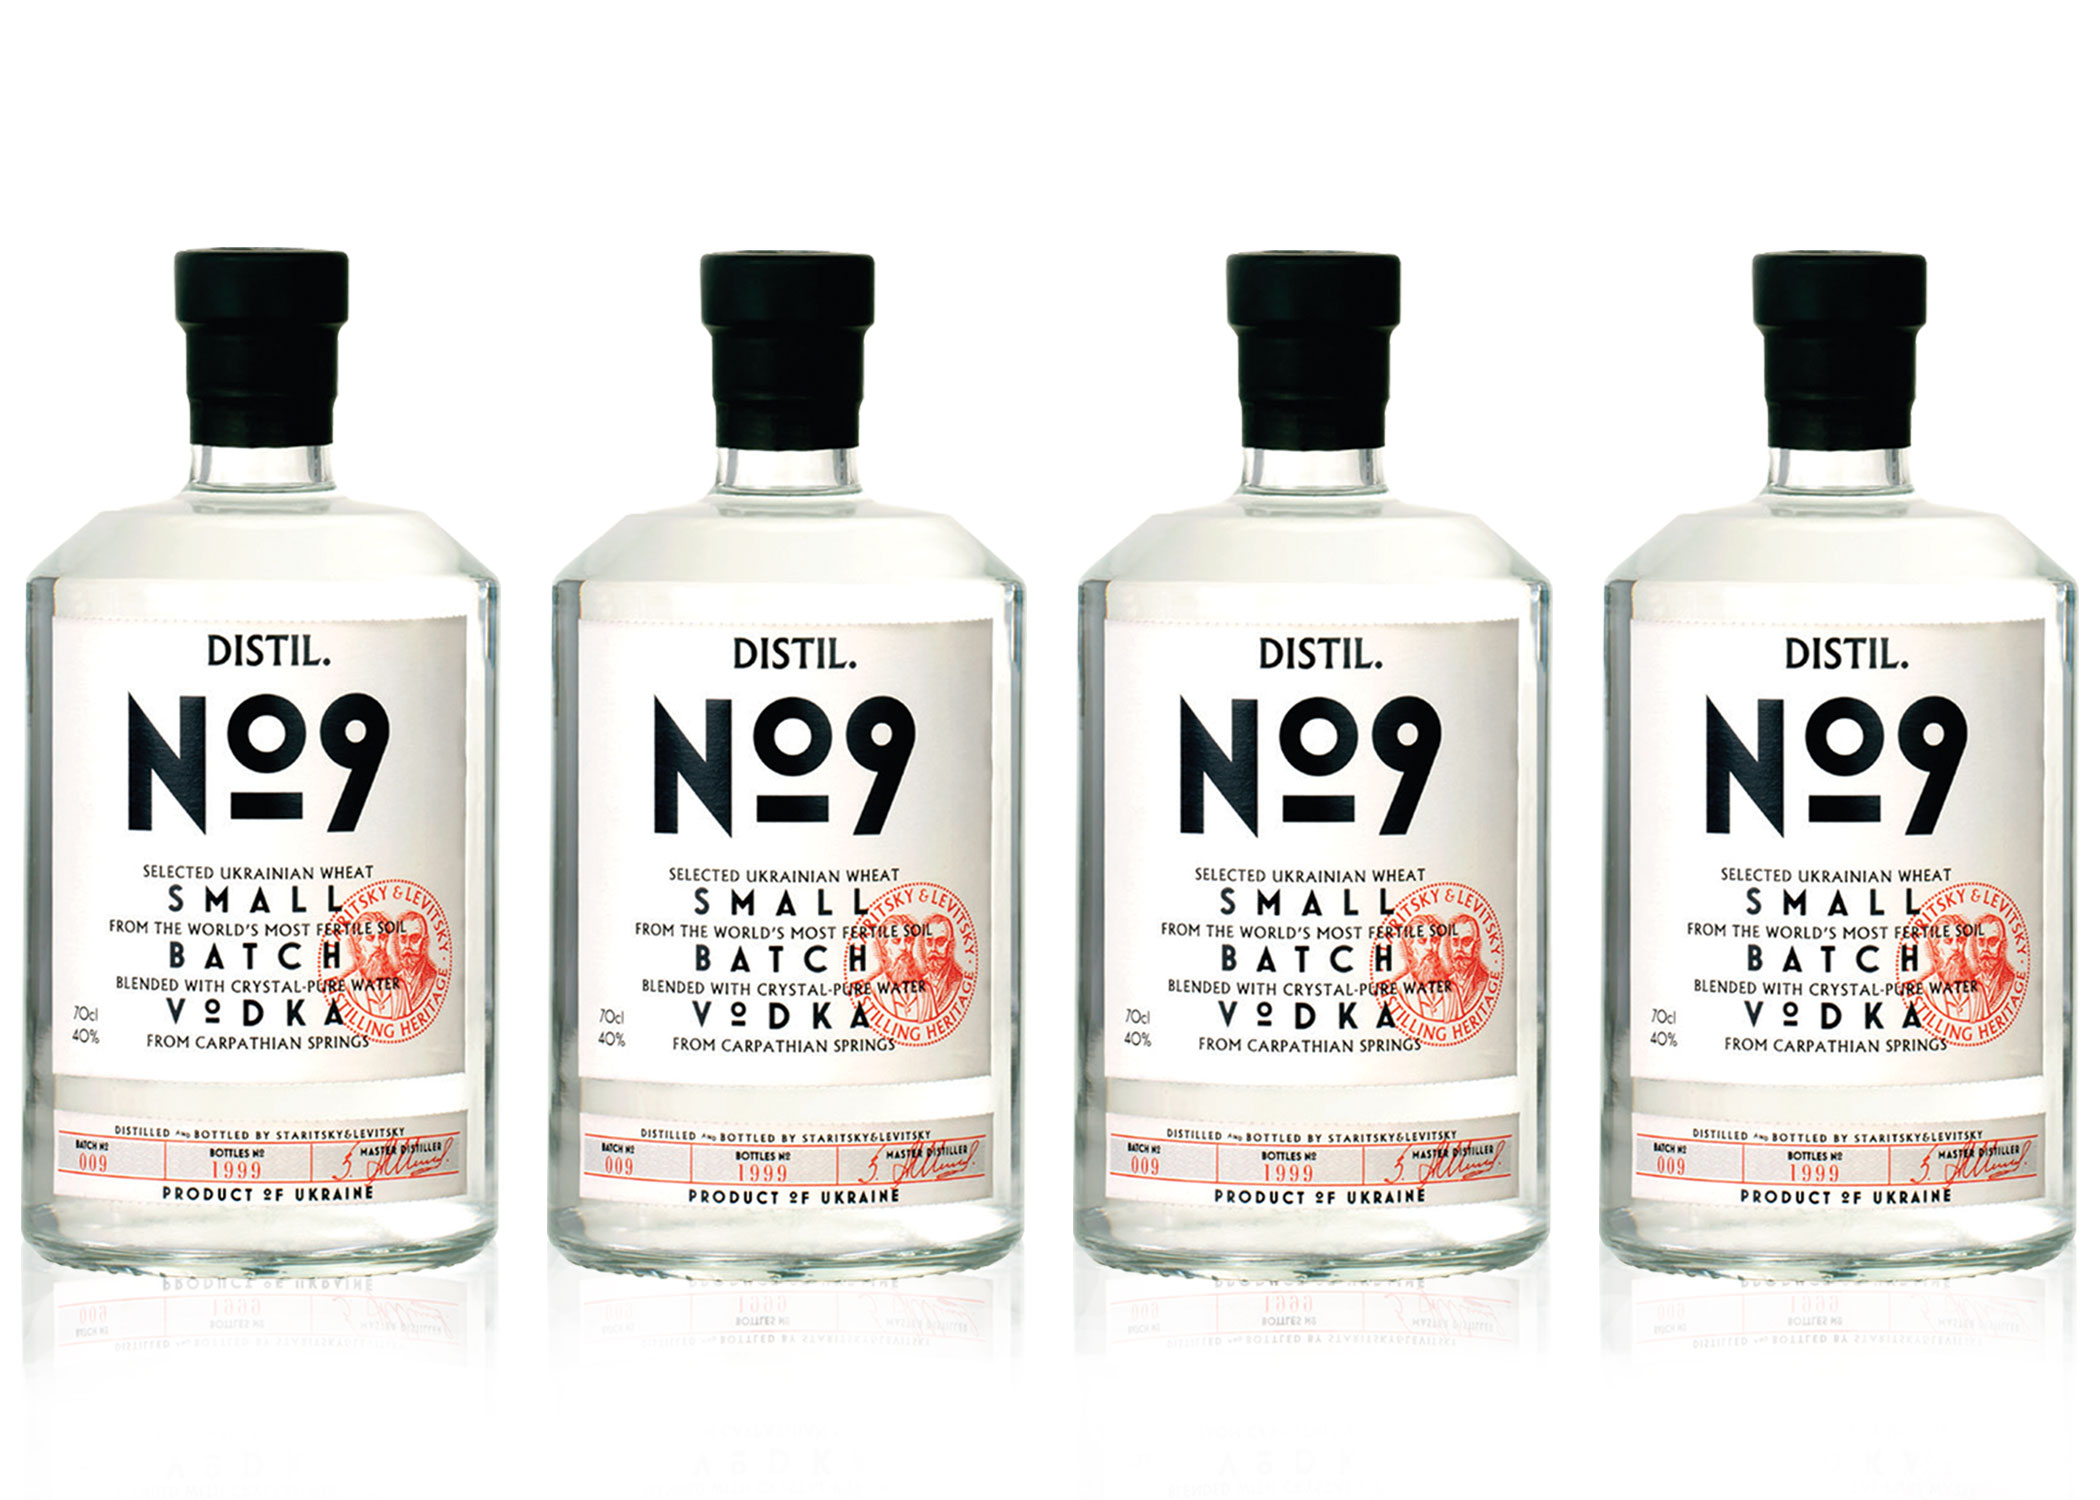 DISTIL. NO9 - Distil.No9 is the modern interpretation of a traditional Ukrainian recipe and is a young, fresh vodka for any occasion. After making a large number of batches, distillation No.9 produced an exceptional result. Distil. No9 is distilled five times and purified four times (twice through brick charcoal and twice through rhinestone). It is produced in single batch 9,999 bottles.